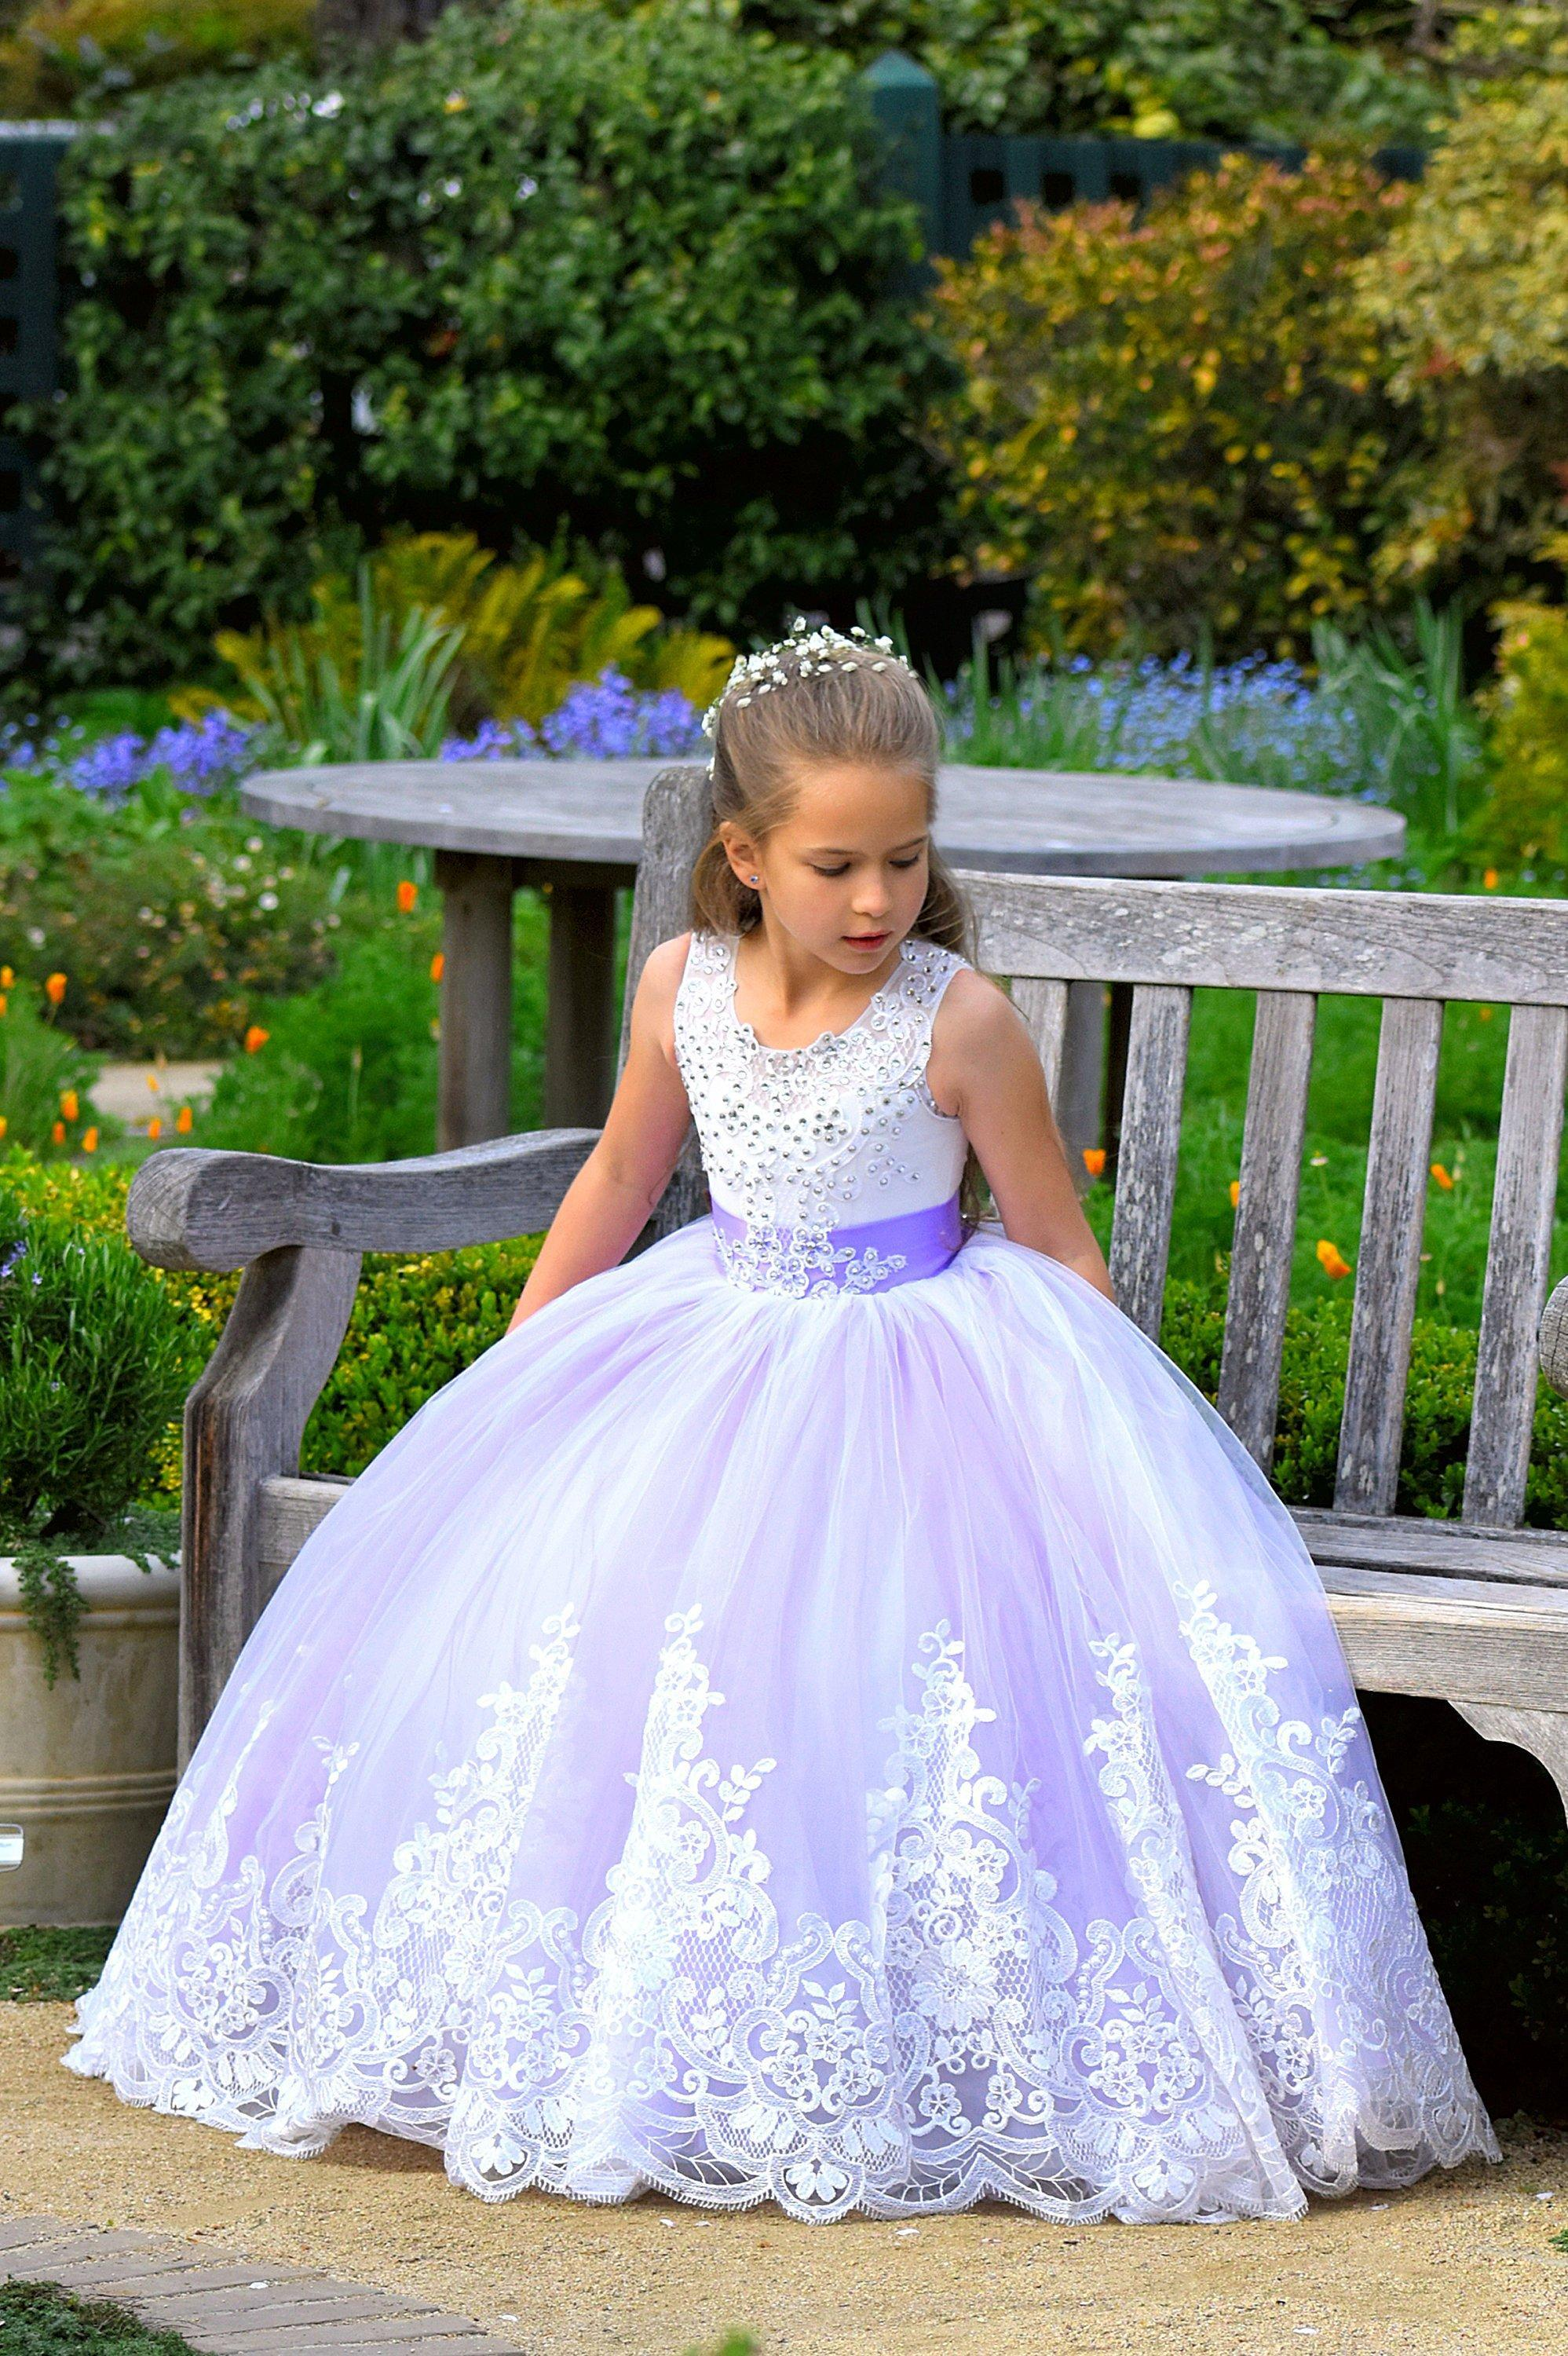 64bd51e3e9 Purple Flower Girl Dress Lavender Wedding Lace Little Girl Kids Holiday  Birthday Princess Purple Wedding Party Girls Dress Formal Occasion